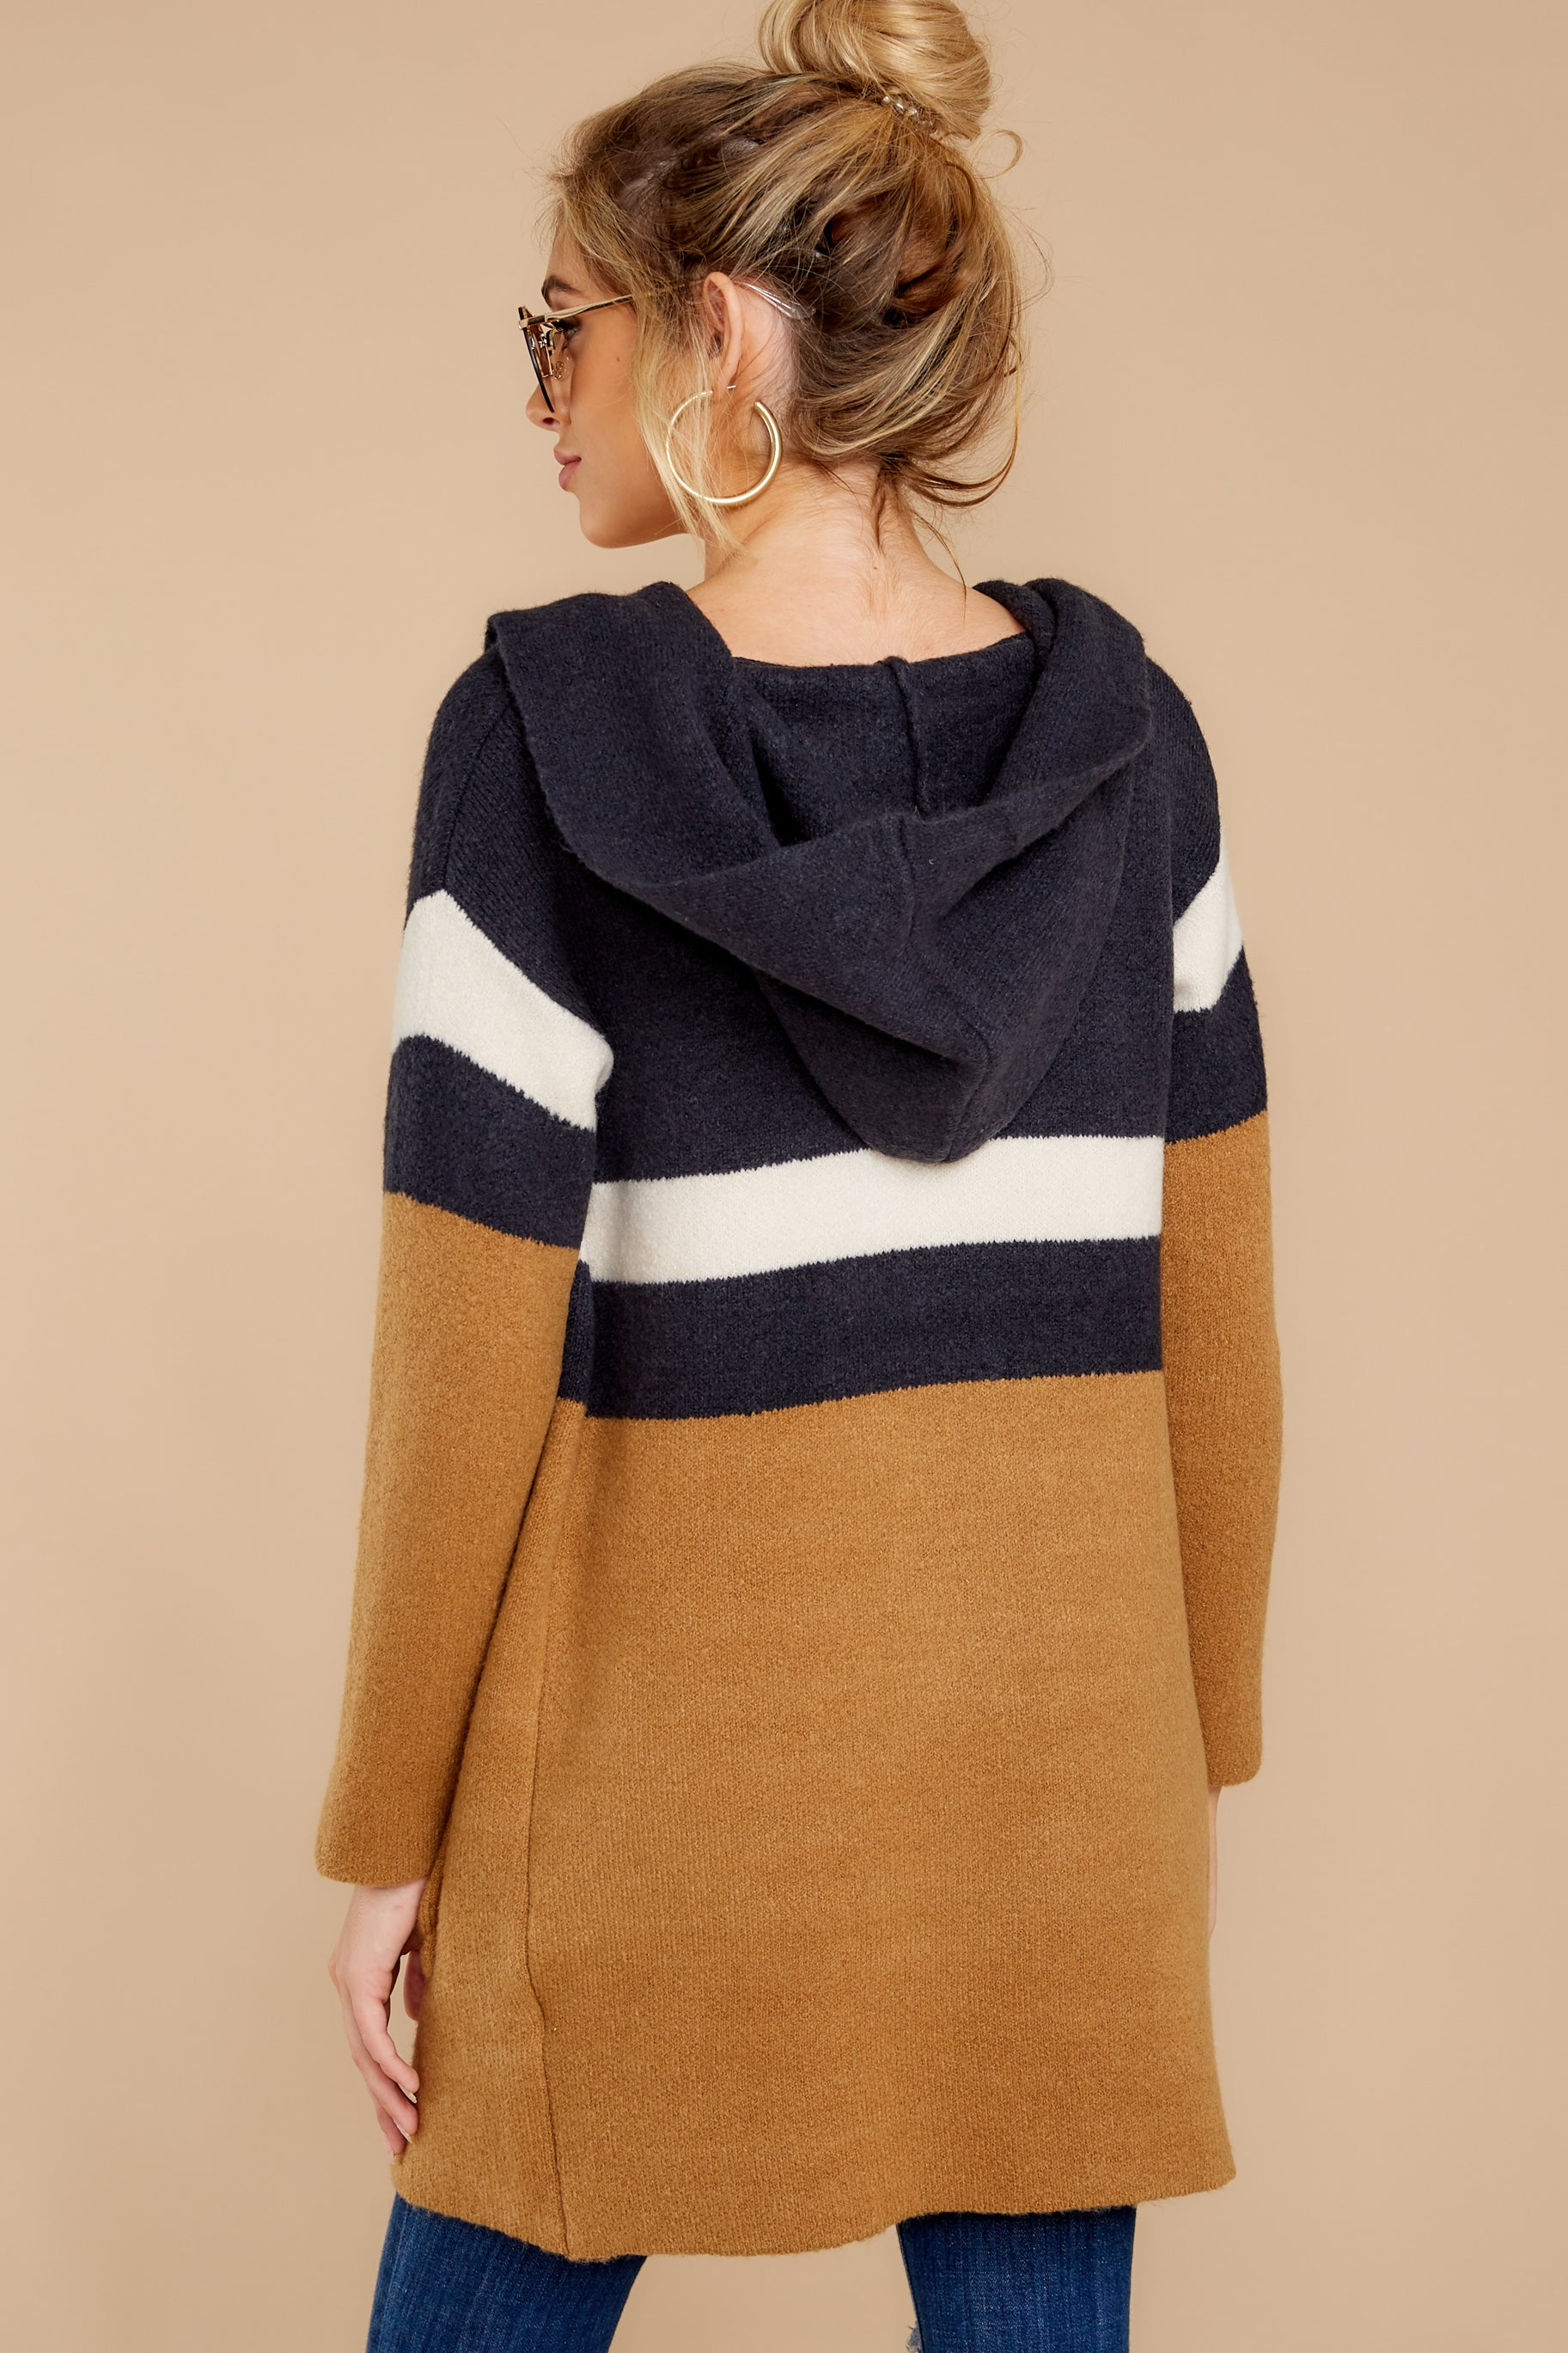 8 Early Morning Camel And Navy Striped Cardigan at reddressboutique.com